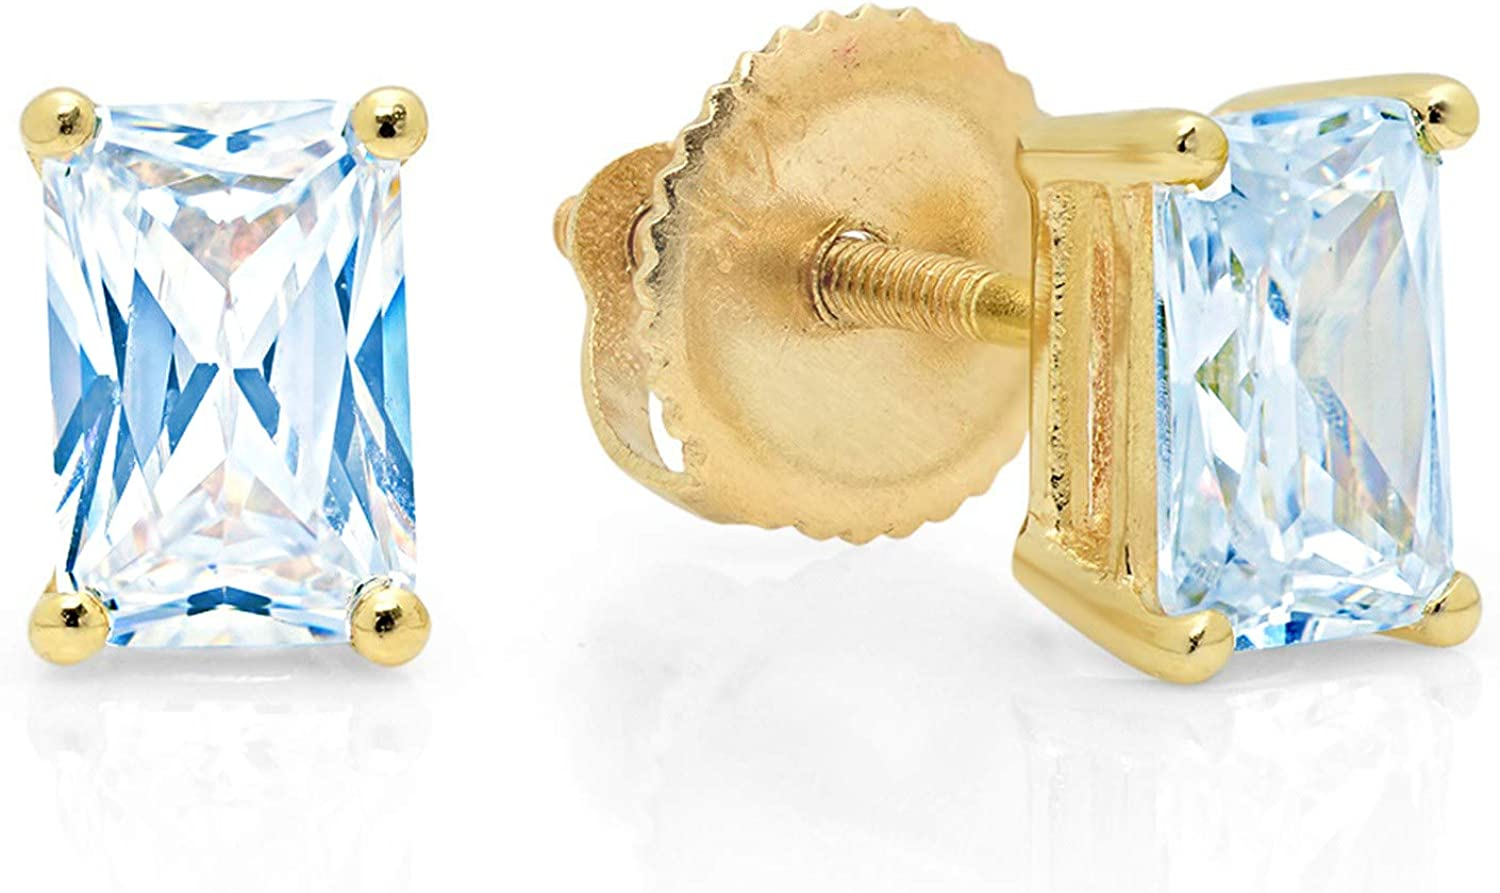 Clara Pucci 1.0 ct Brilliant Emerald Cut Solitaire VVS1 Flawless Natural Sky Blue Topaz Gemstone Pair of Stud Earrings Solid 18K Yellow Gold Screw Back